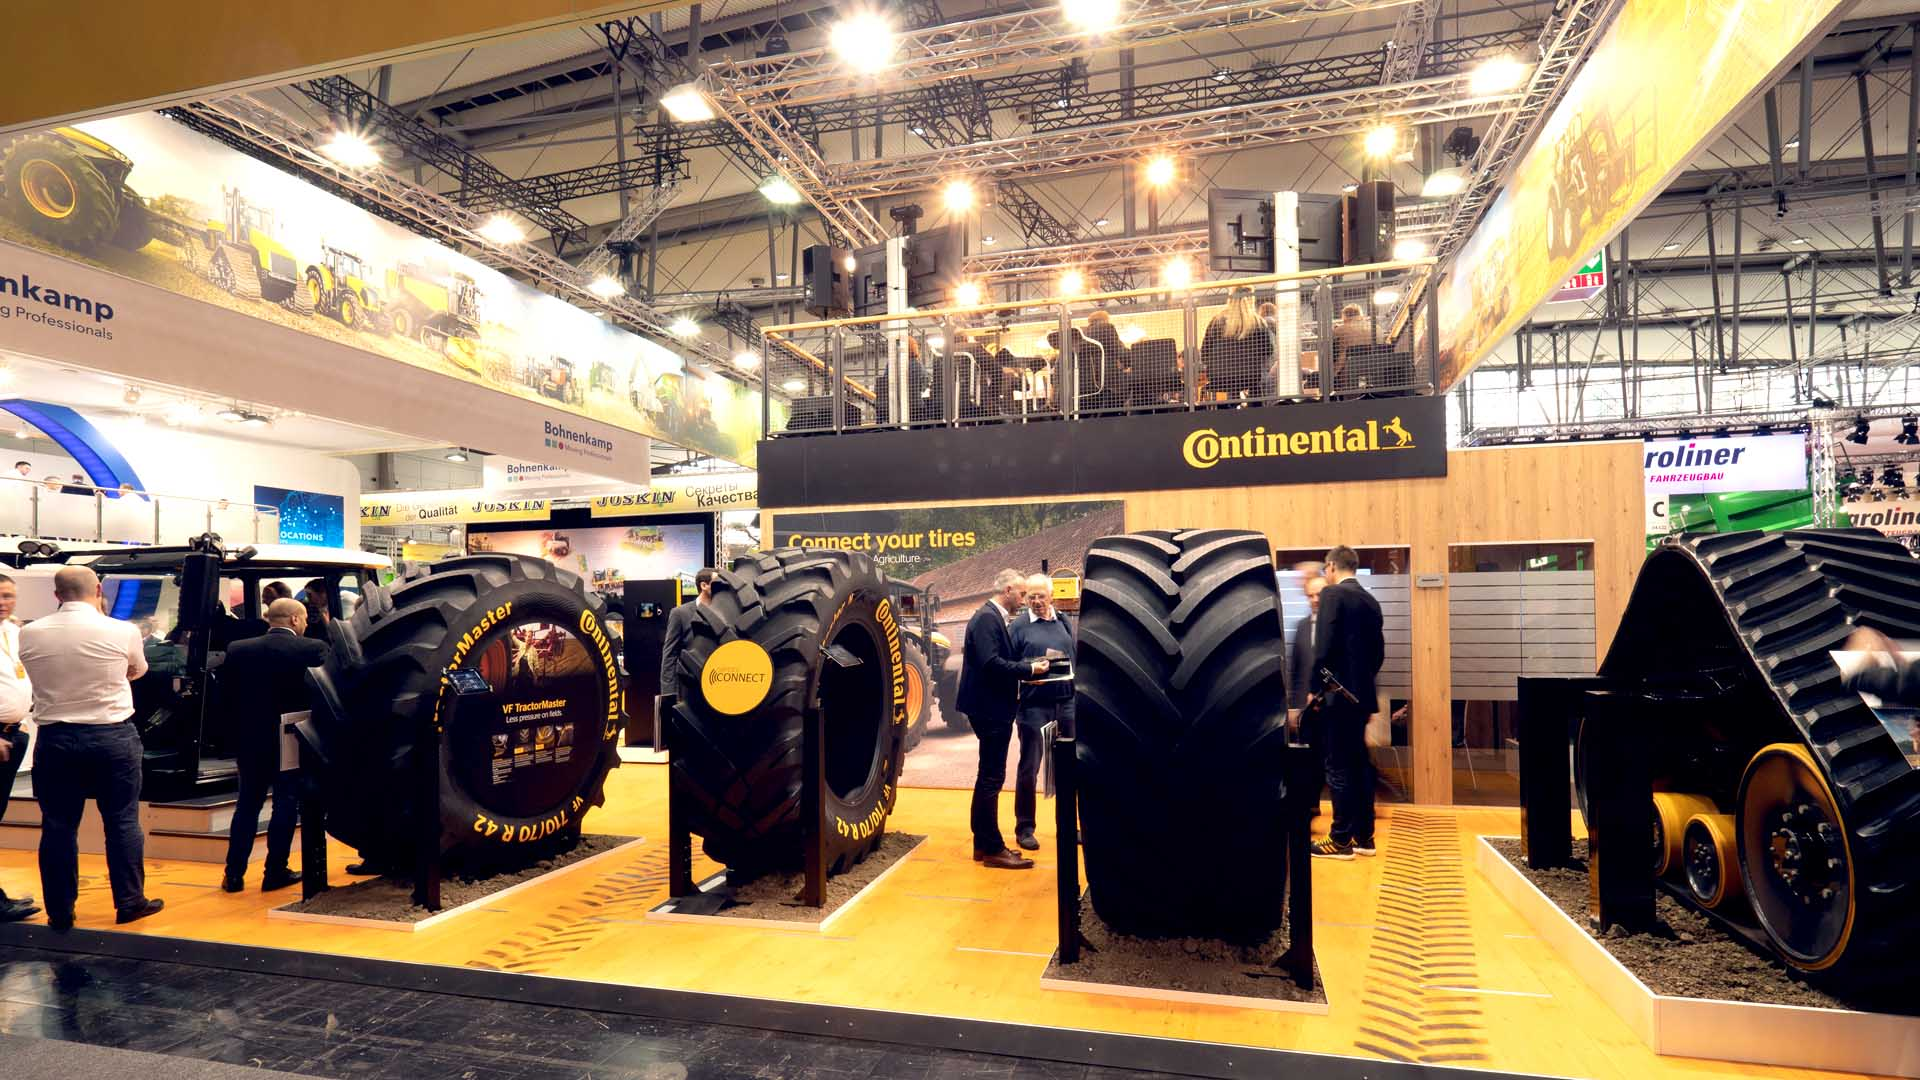 Continental Agritechnica